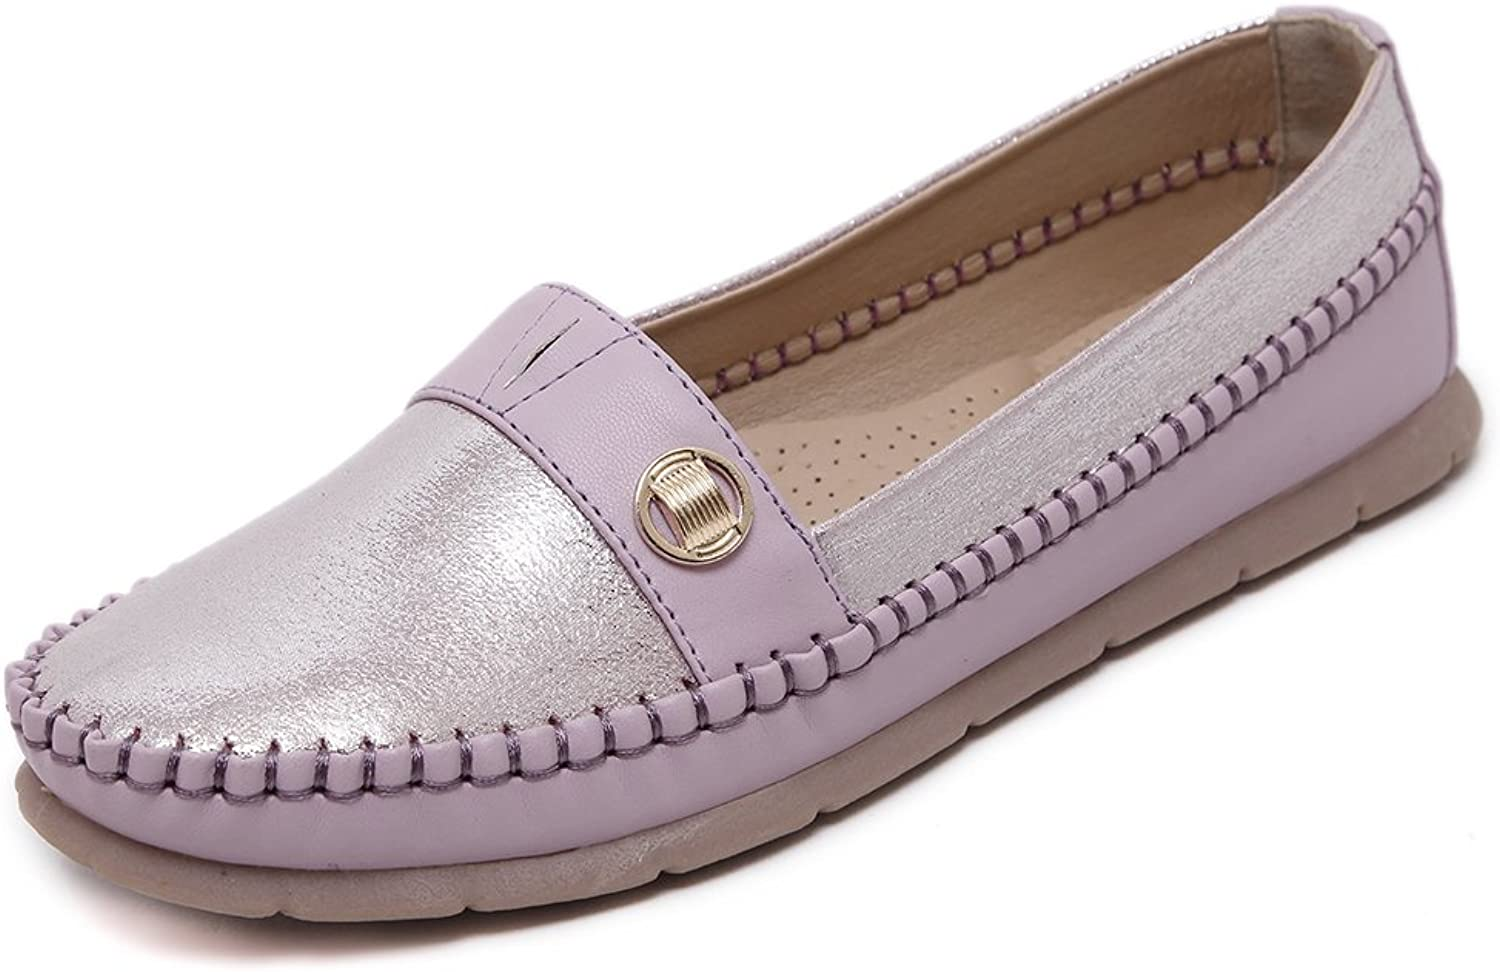 Giles Jones Women's Classic Flats Rubber Soft Sole Loafers Slip On shoes